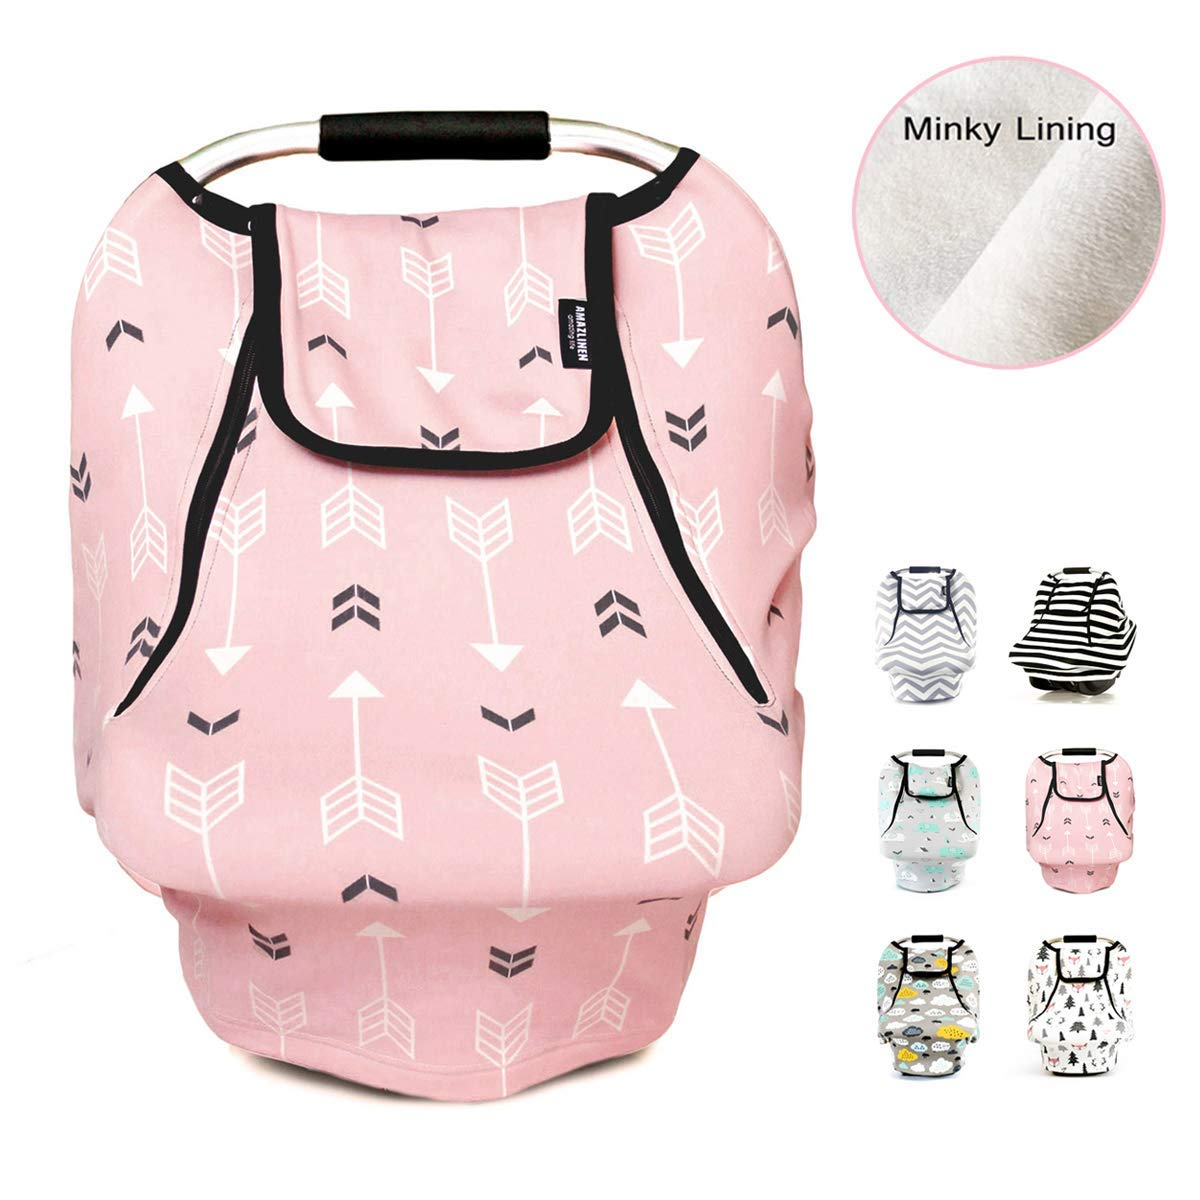 Infant Car Canopy Spring Autumn Winter,Snug Warm Breathable Windproof Adjustable Peep Window,Insect Free,Universal Fit,Pink Arrowshower Stretchy Baby Car Seat Covers for Boys Girls